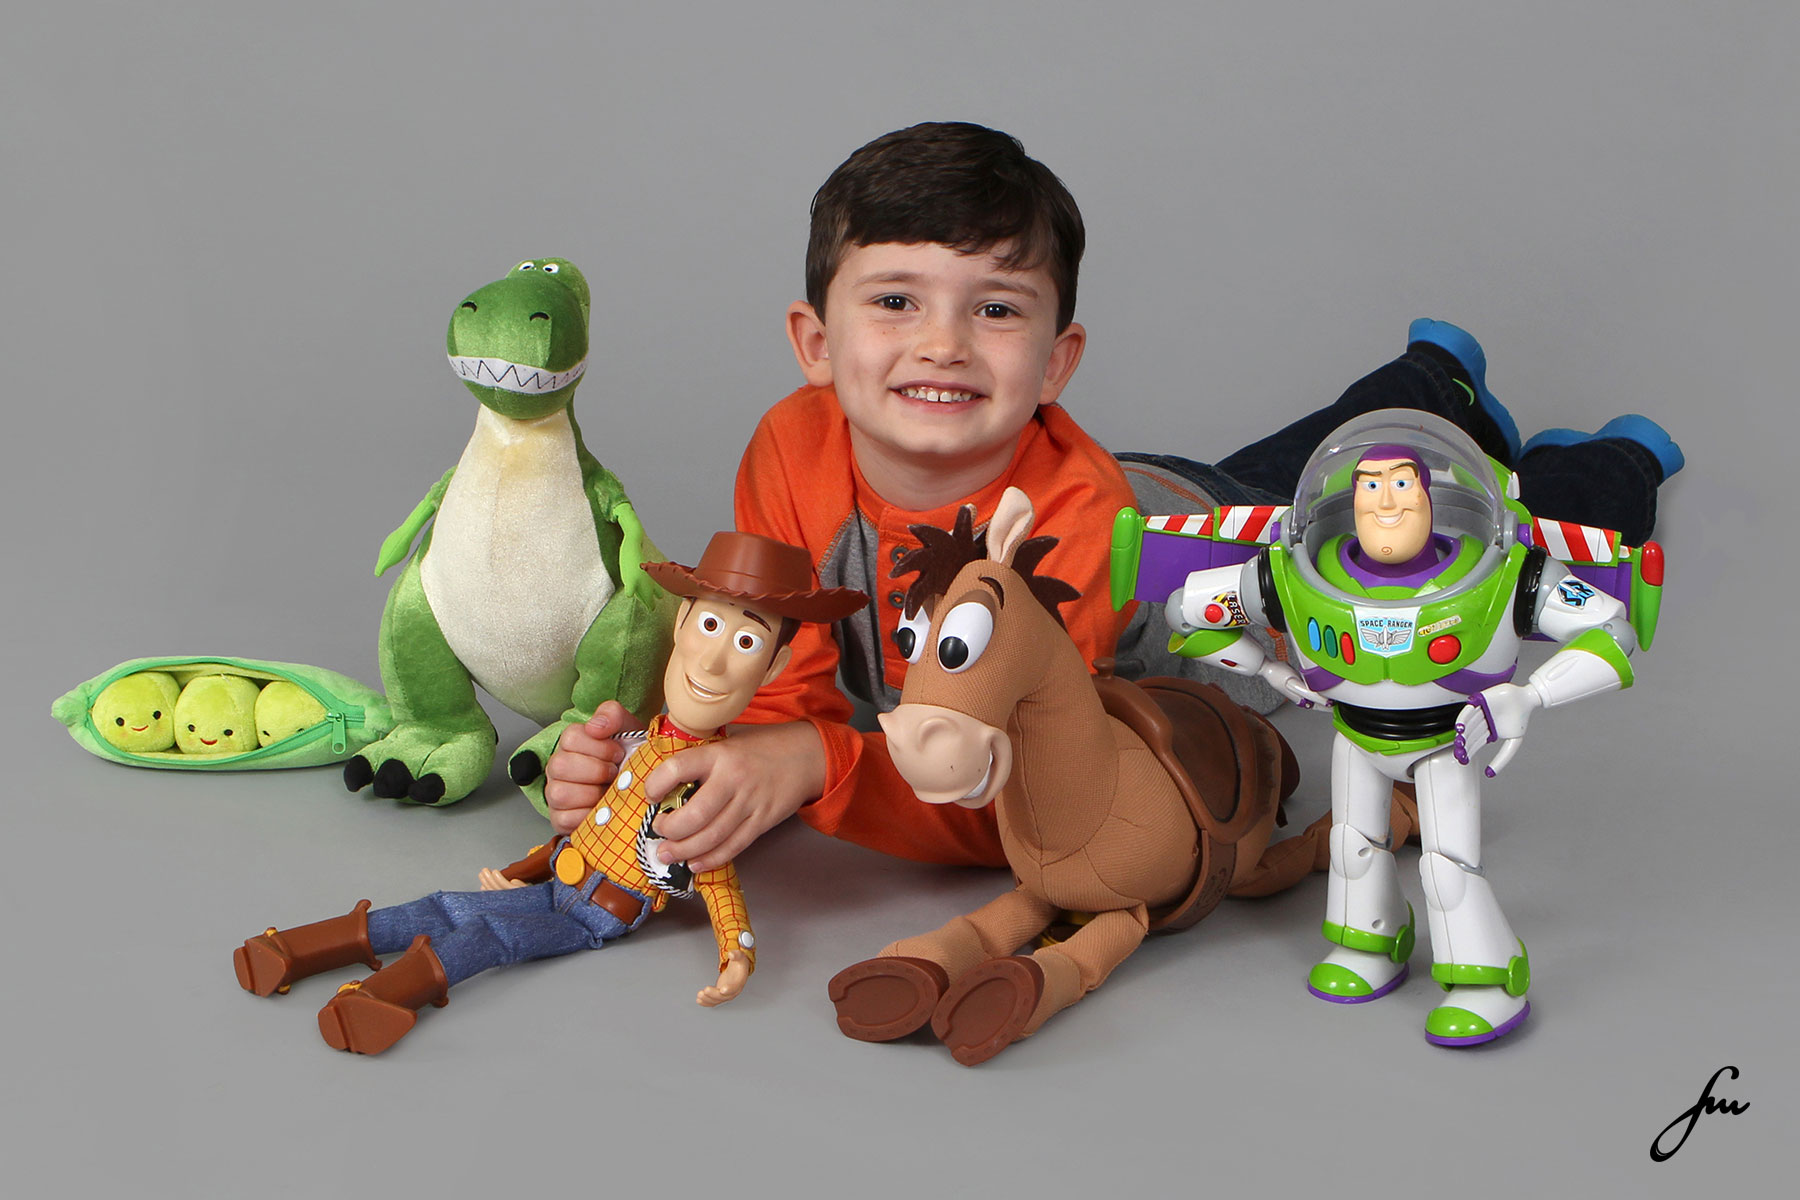 Toy Story - Kids Studio Session - Forever Memories